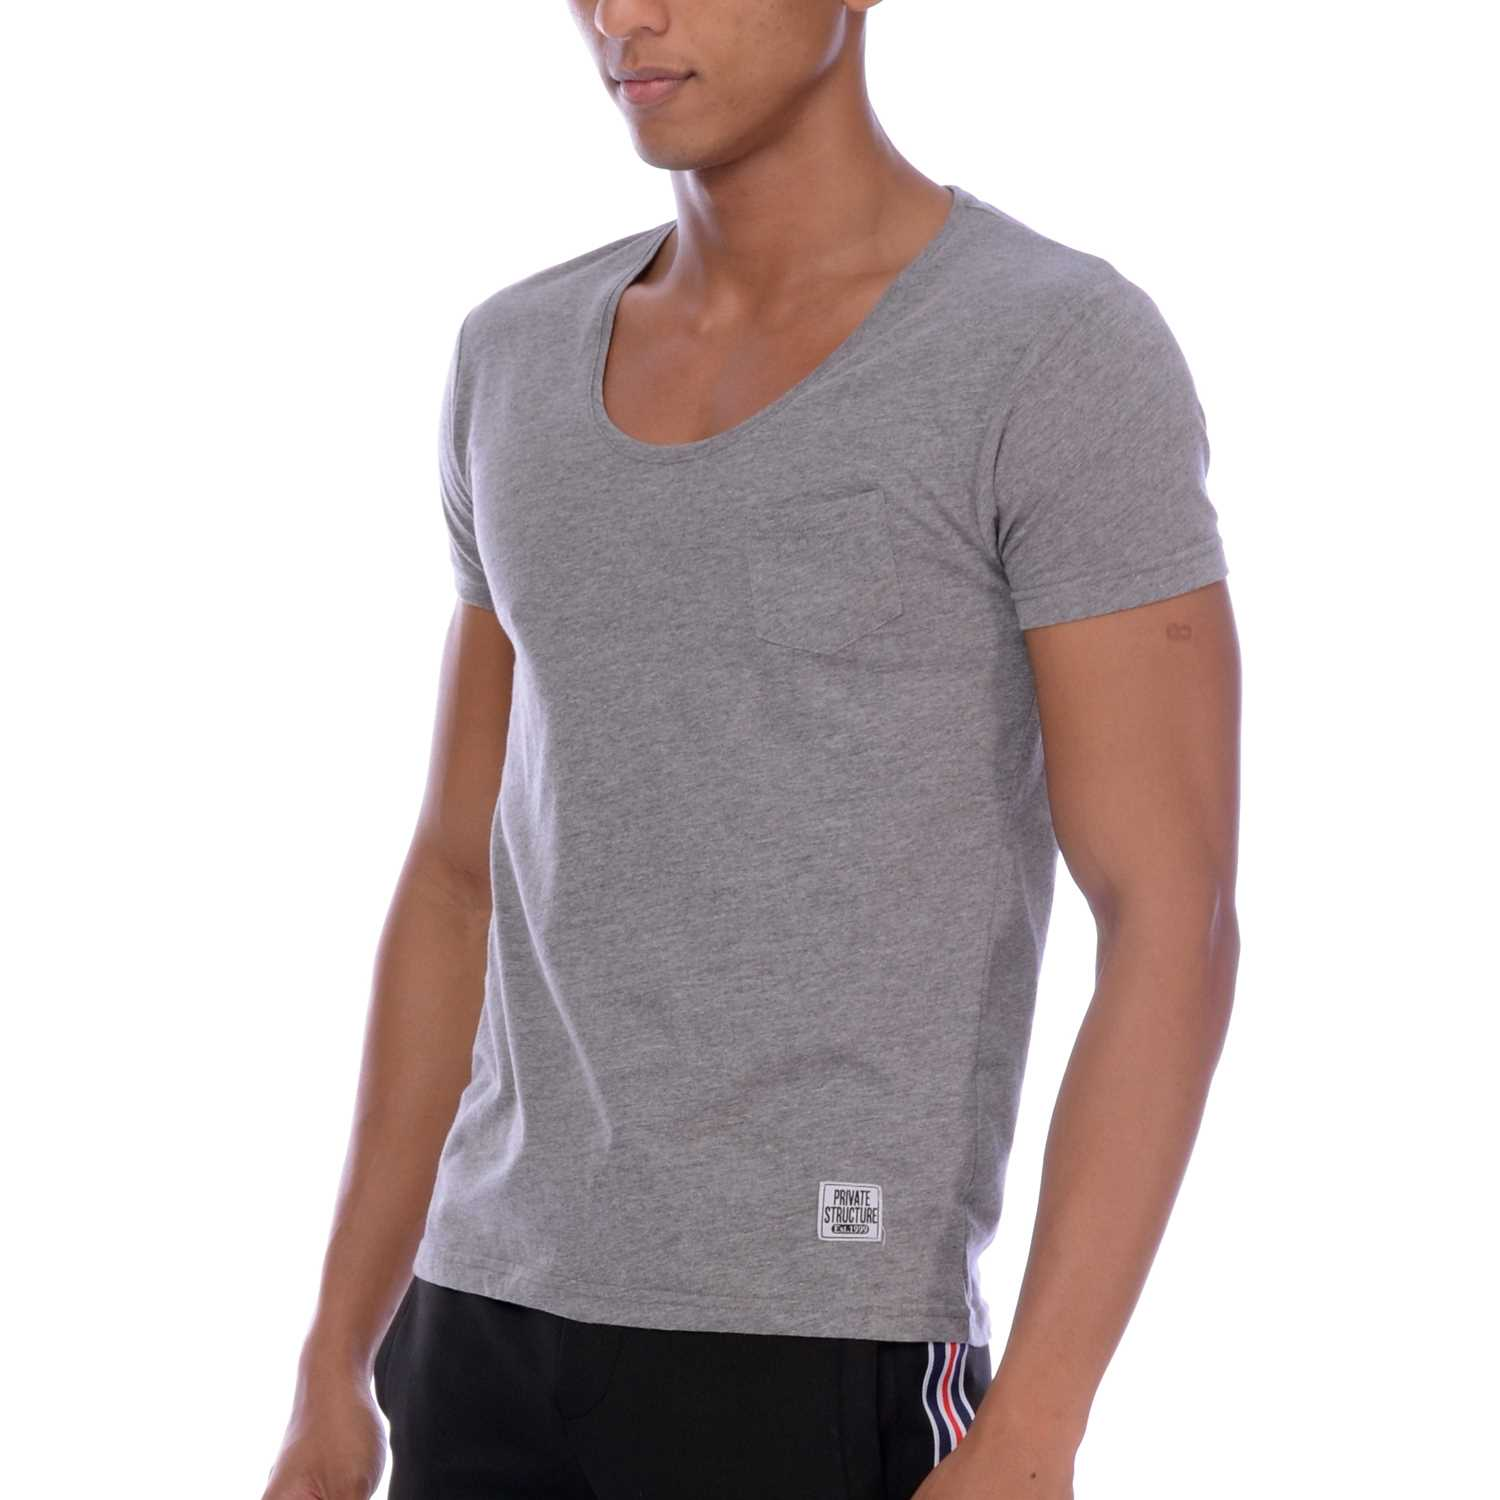 Body Wear Custom Fit Crew Neck Tee, 1664